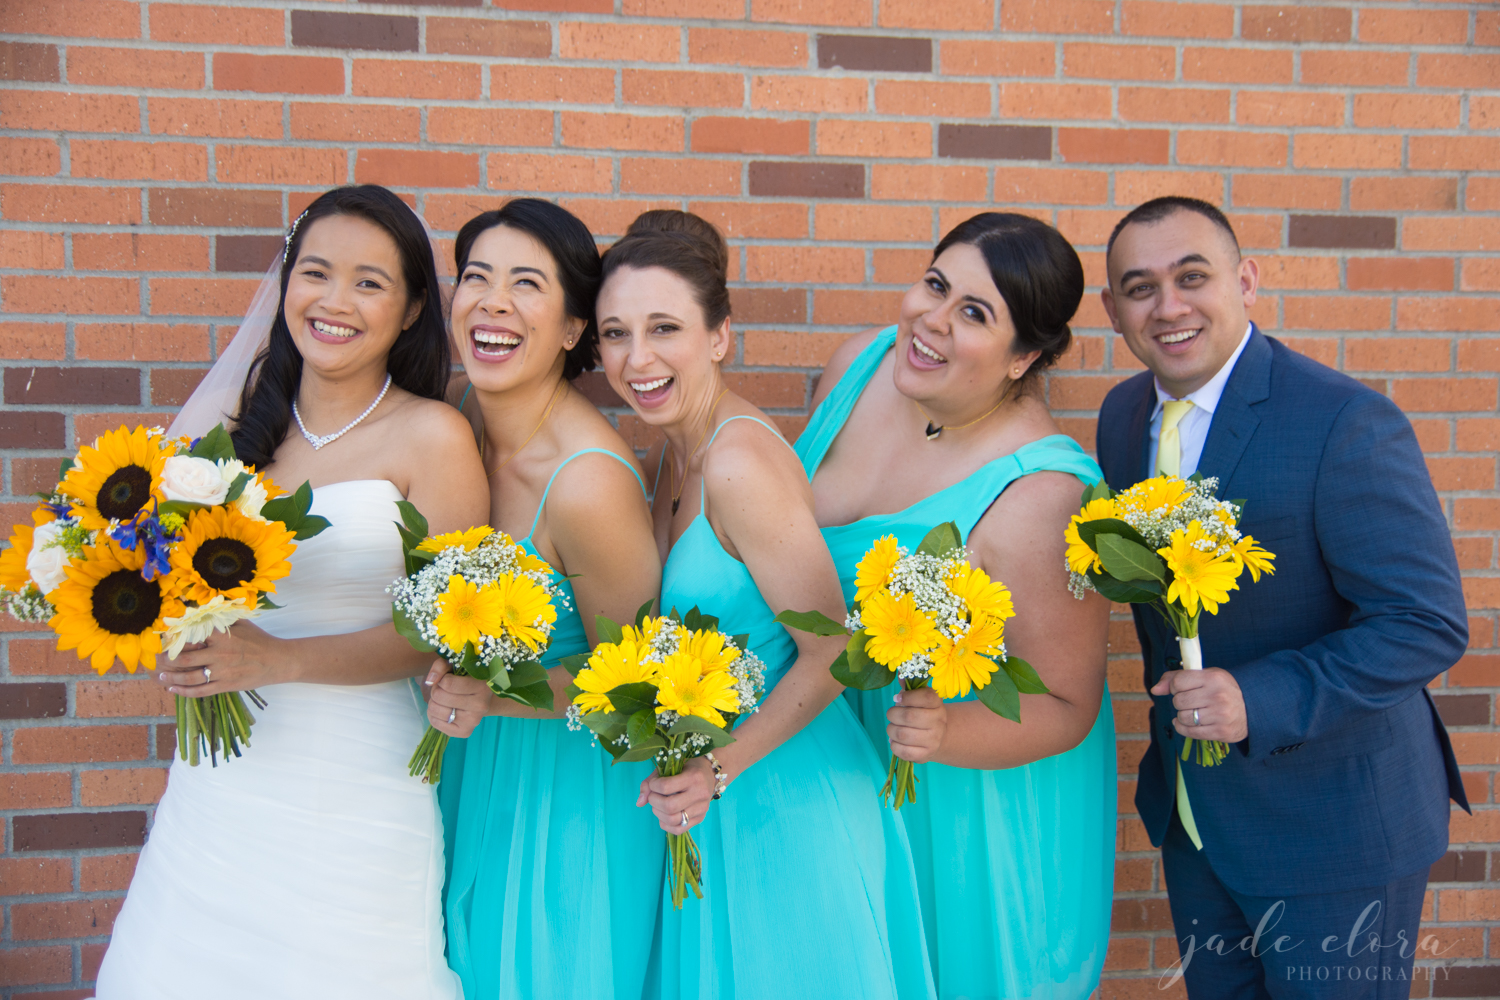 Glendale-Wedding-Photographer-Blog-Jade-Elora-457-2.jpg